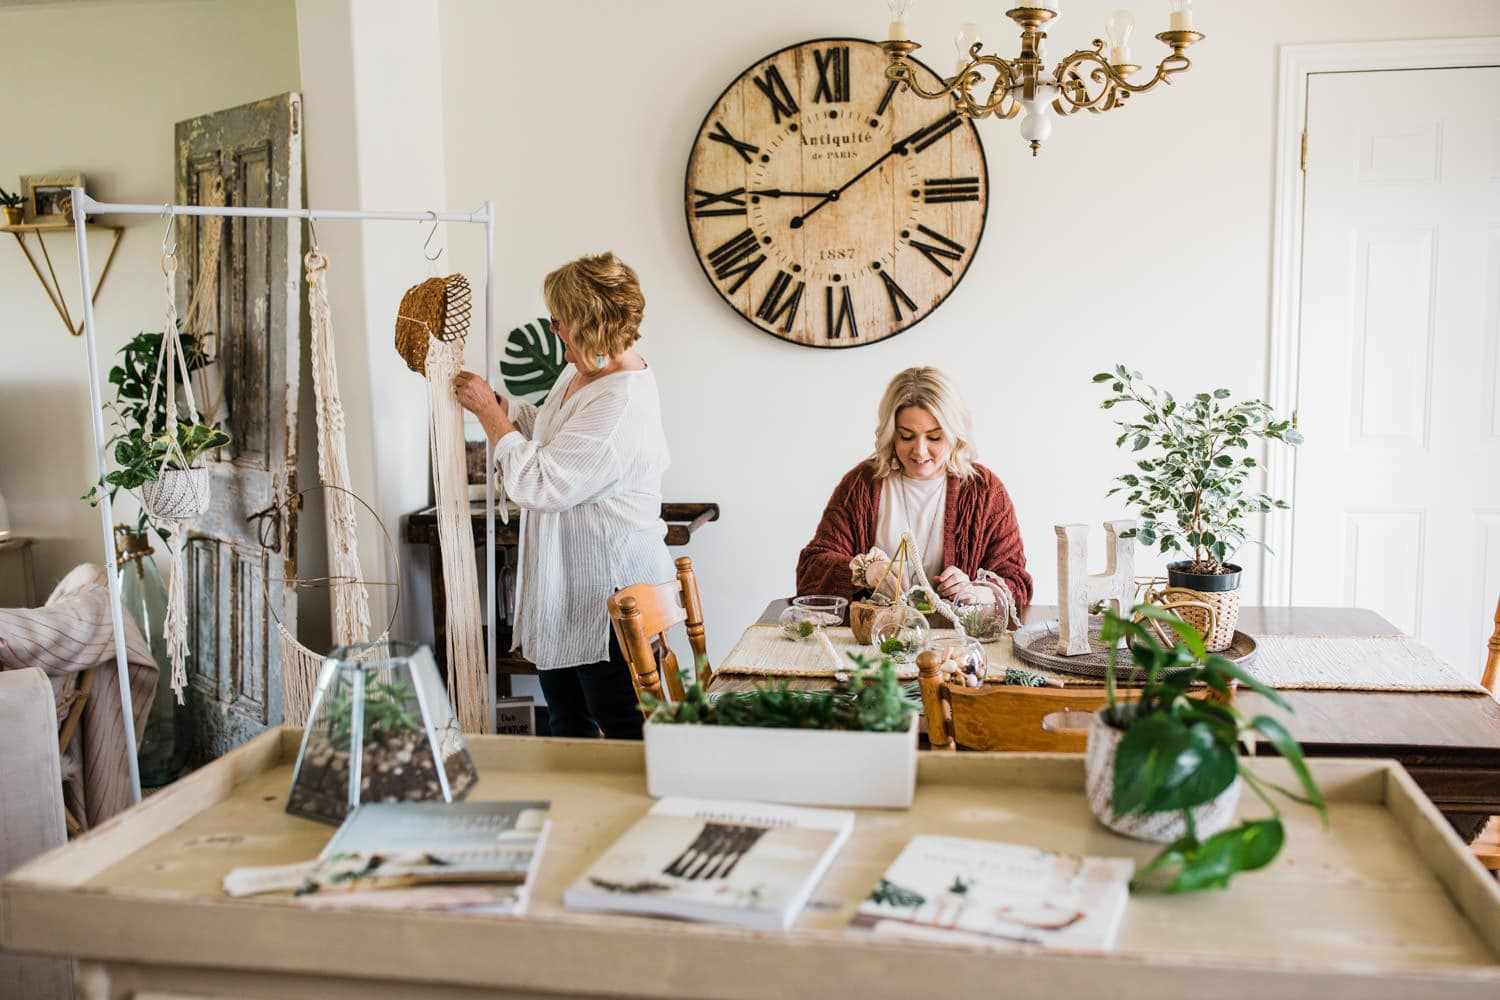 mother and daughter work on plants and macrame products in living room - brand photography ottawa